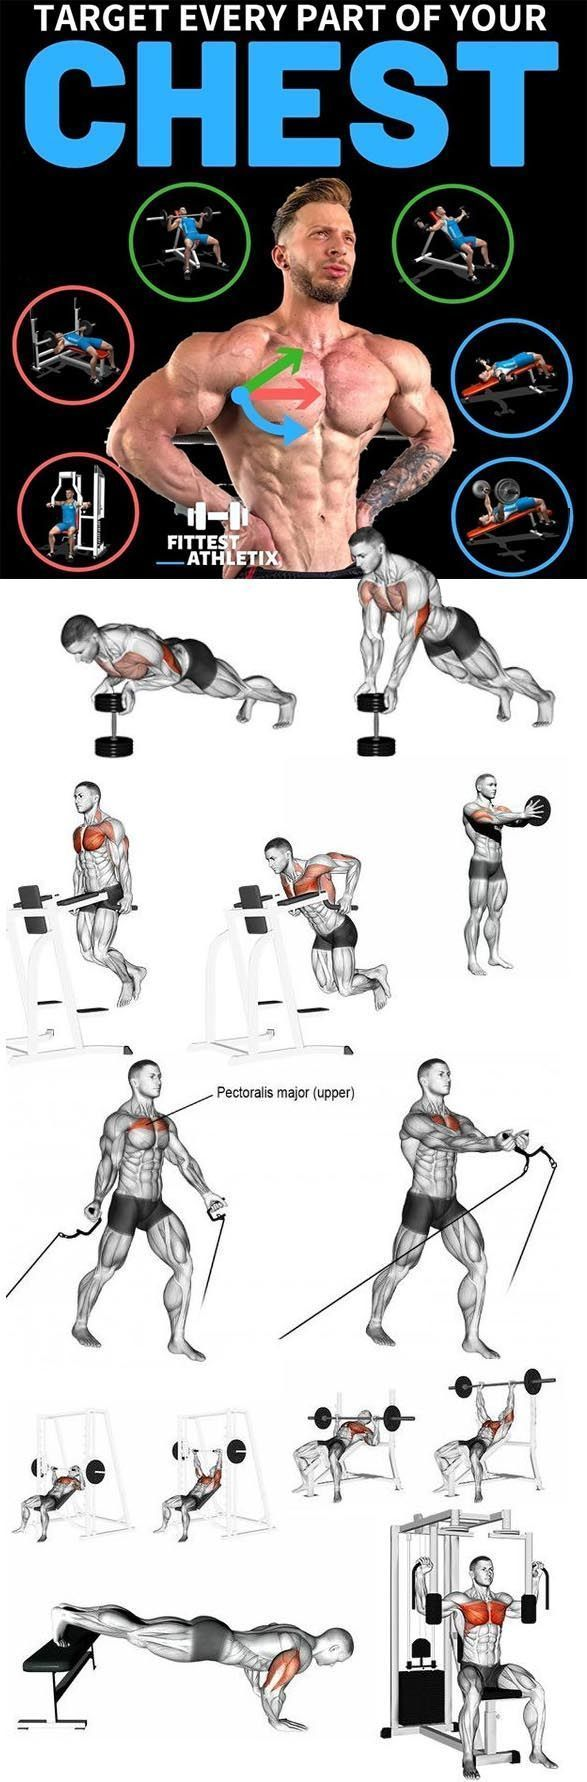 chest workout gym at home or at gym in 2020 Chest